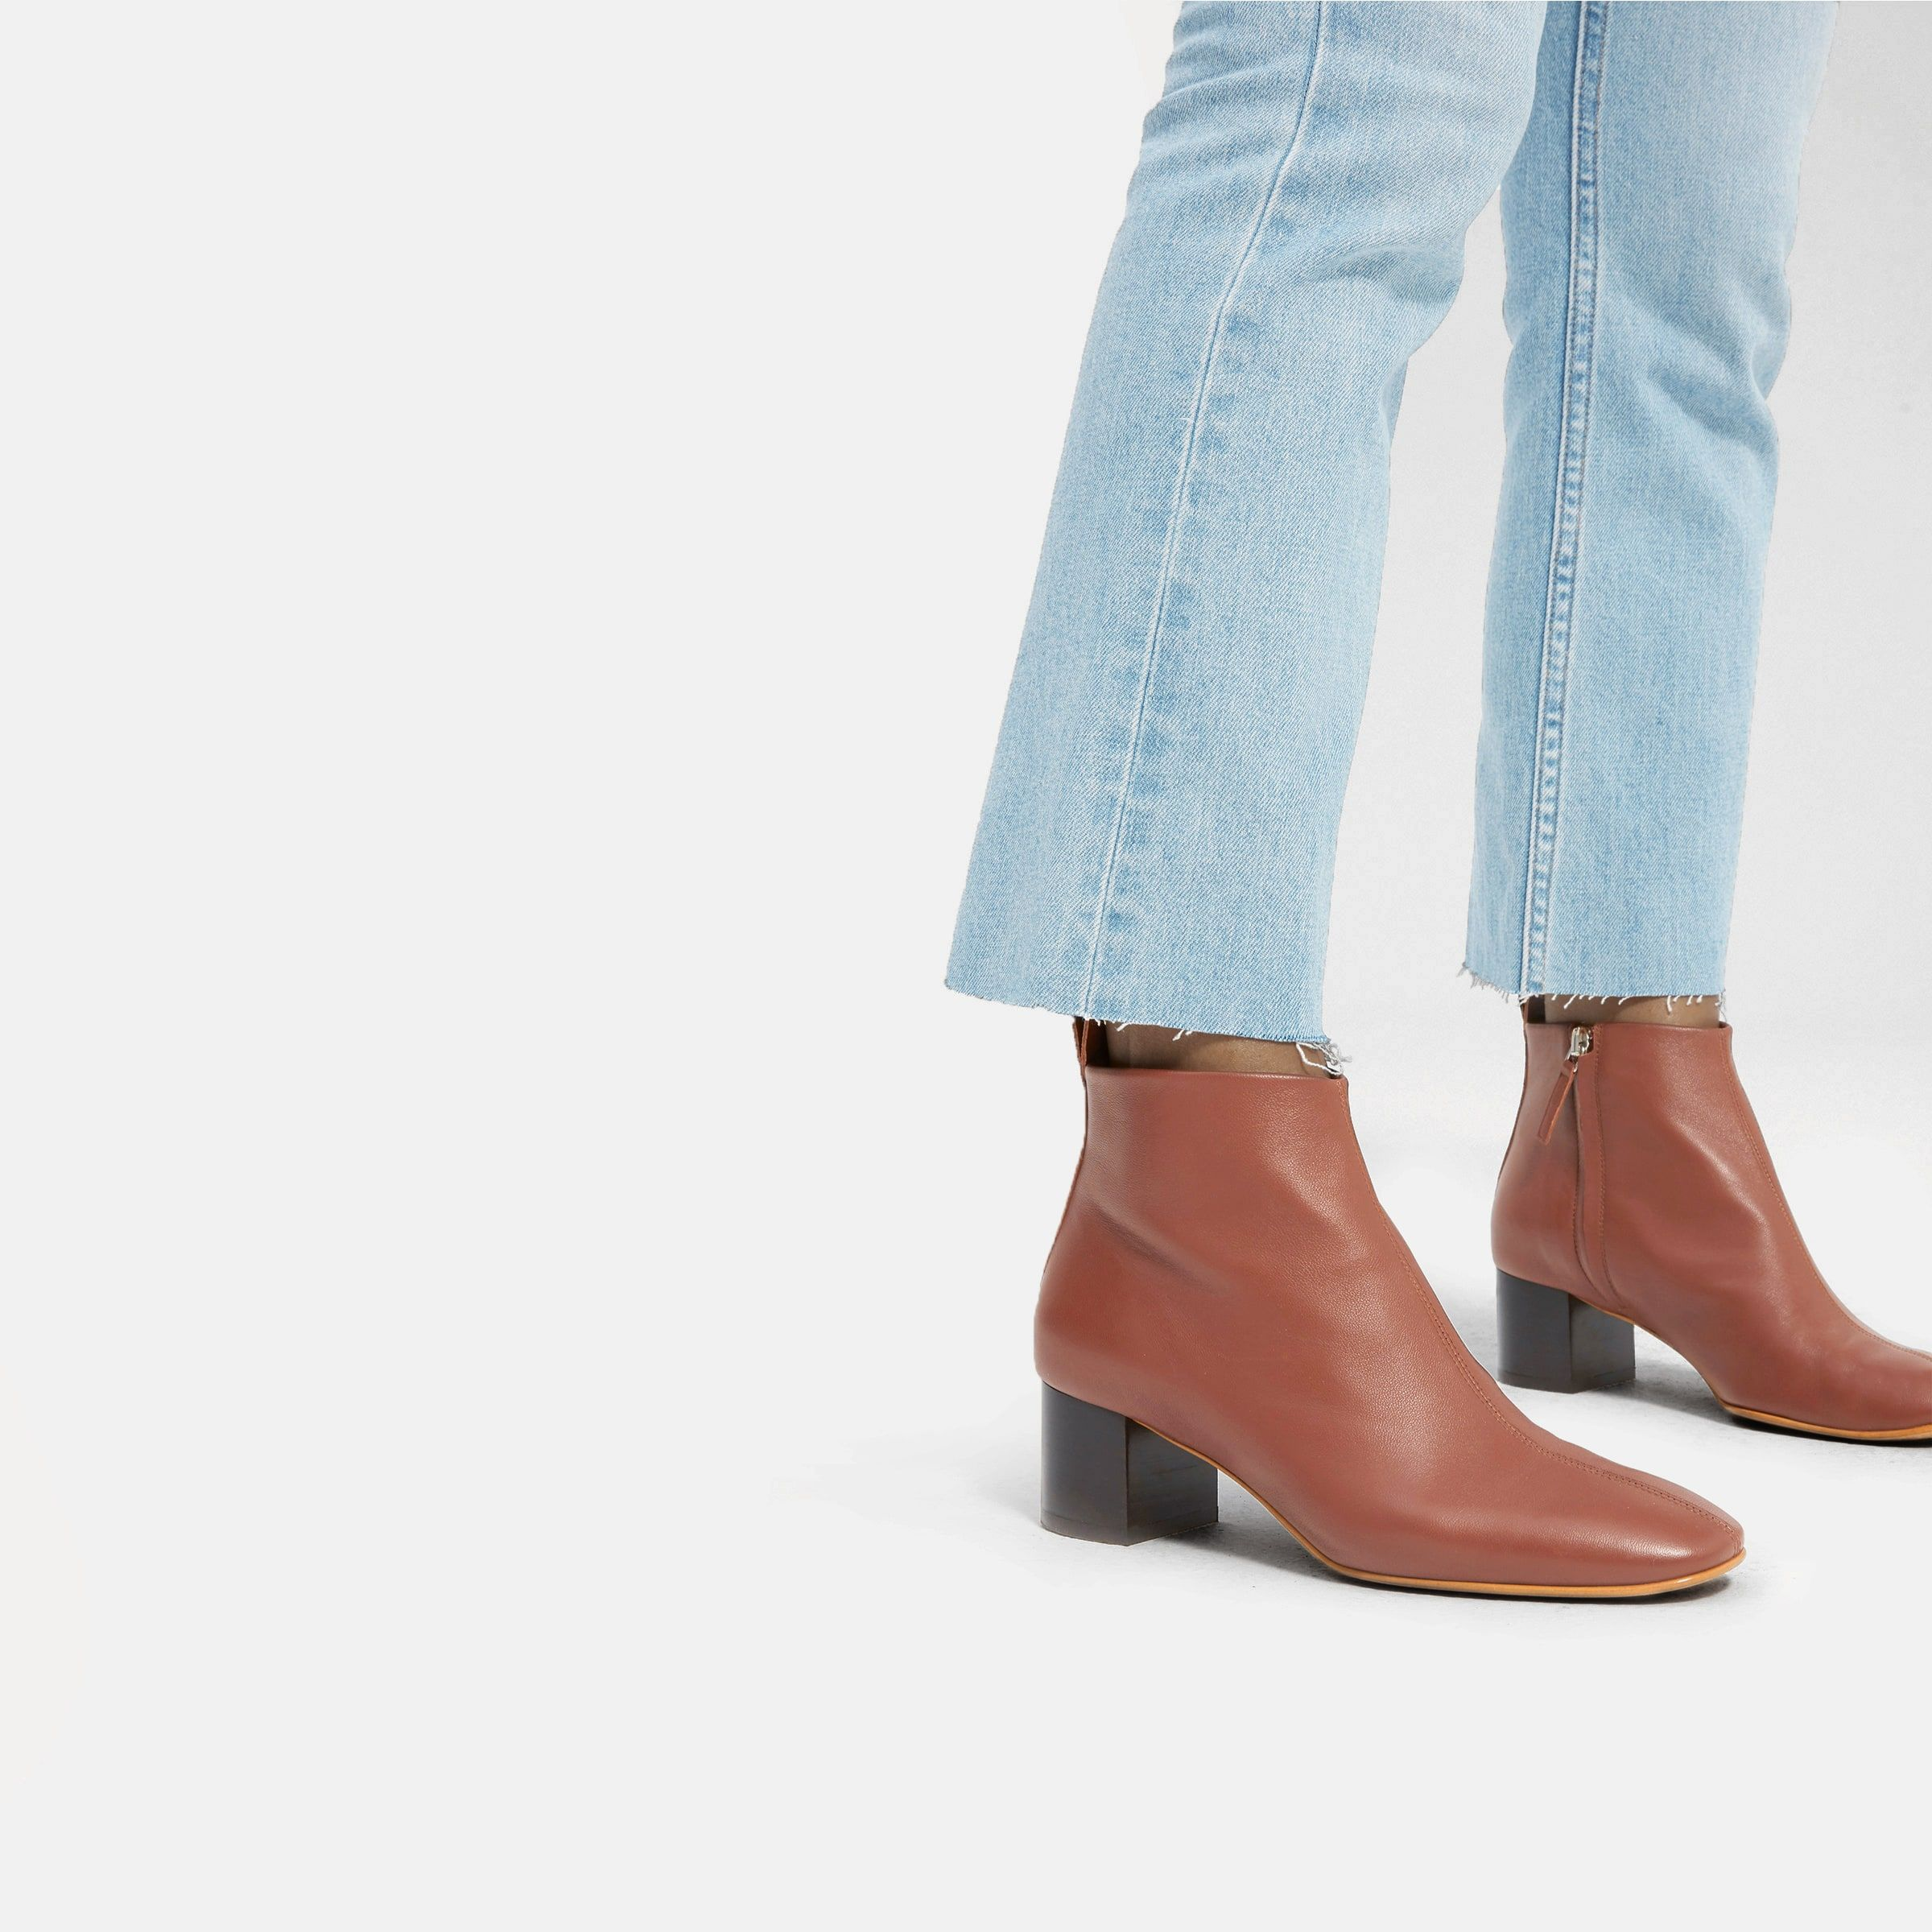 The Heeled Day Boot